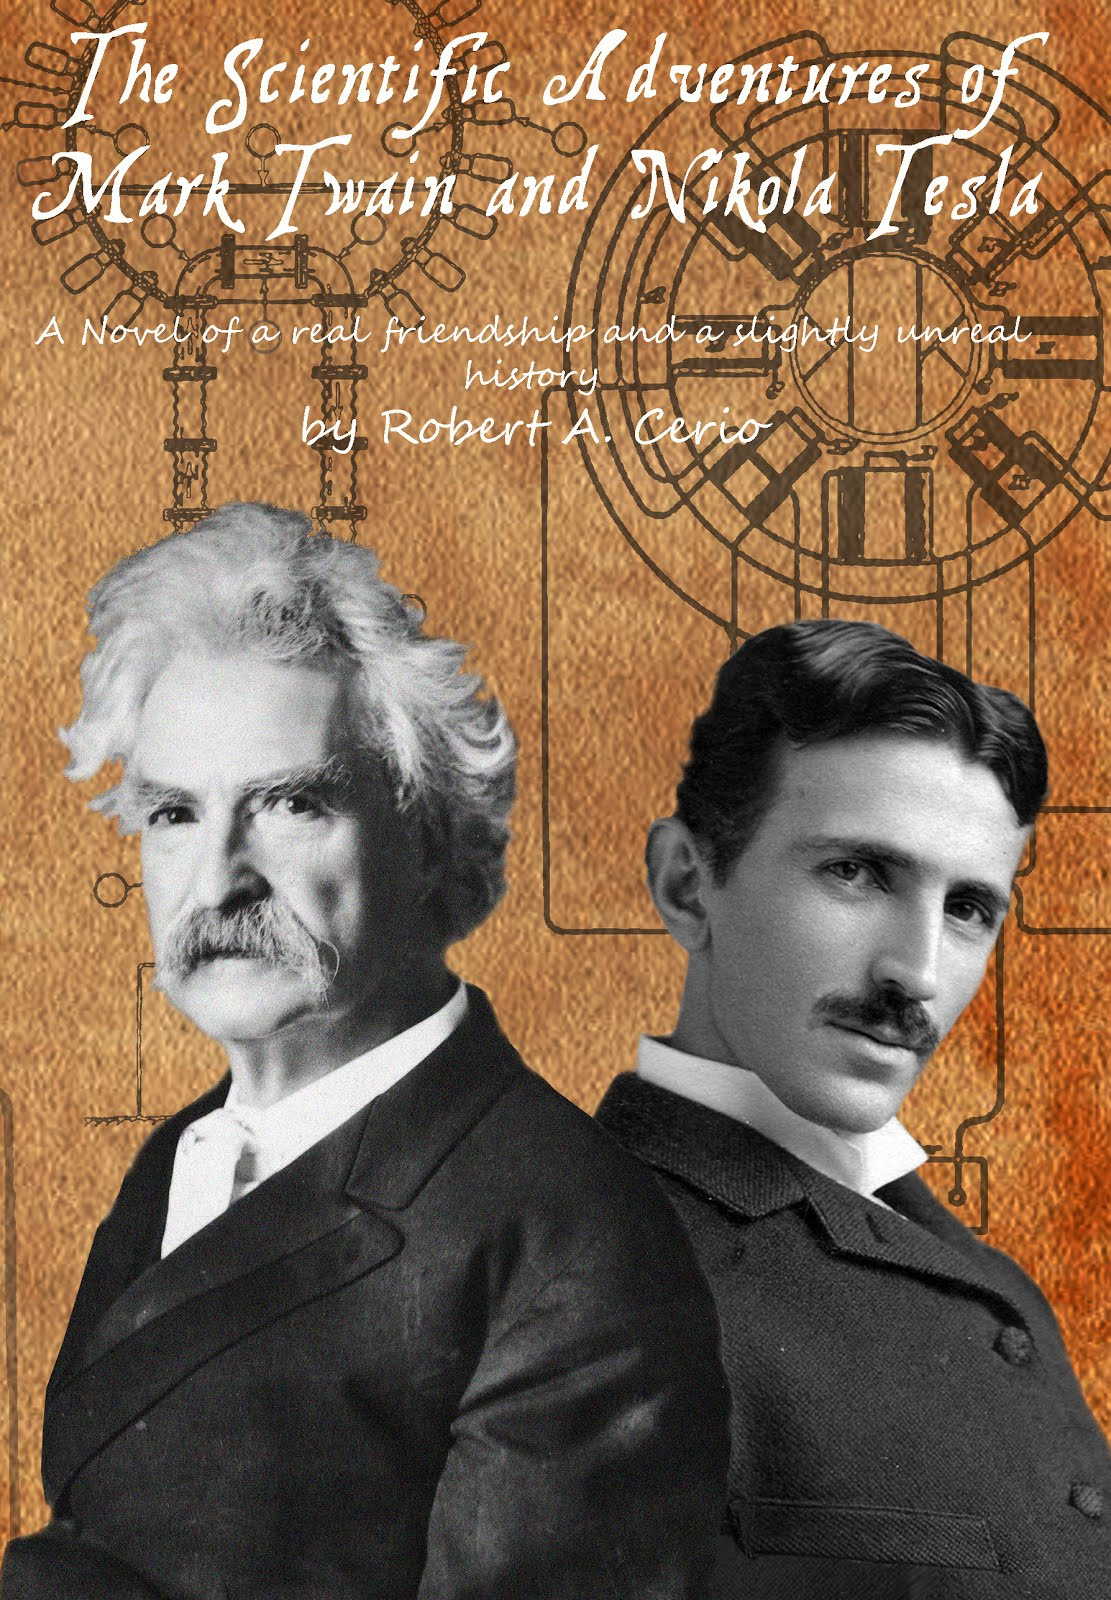 NEW! Collection of Rob's Popular Twain and Tesla stories!